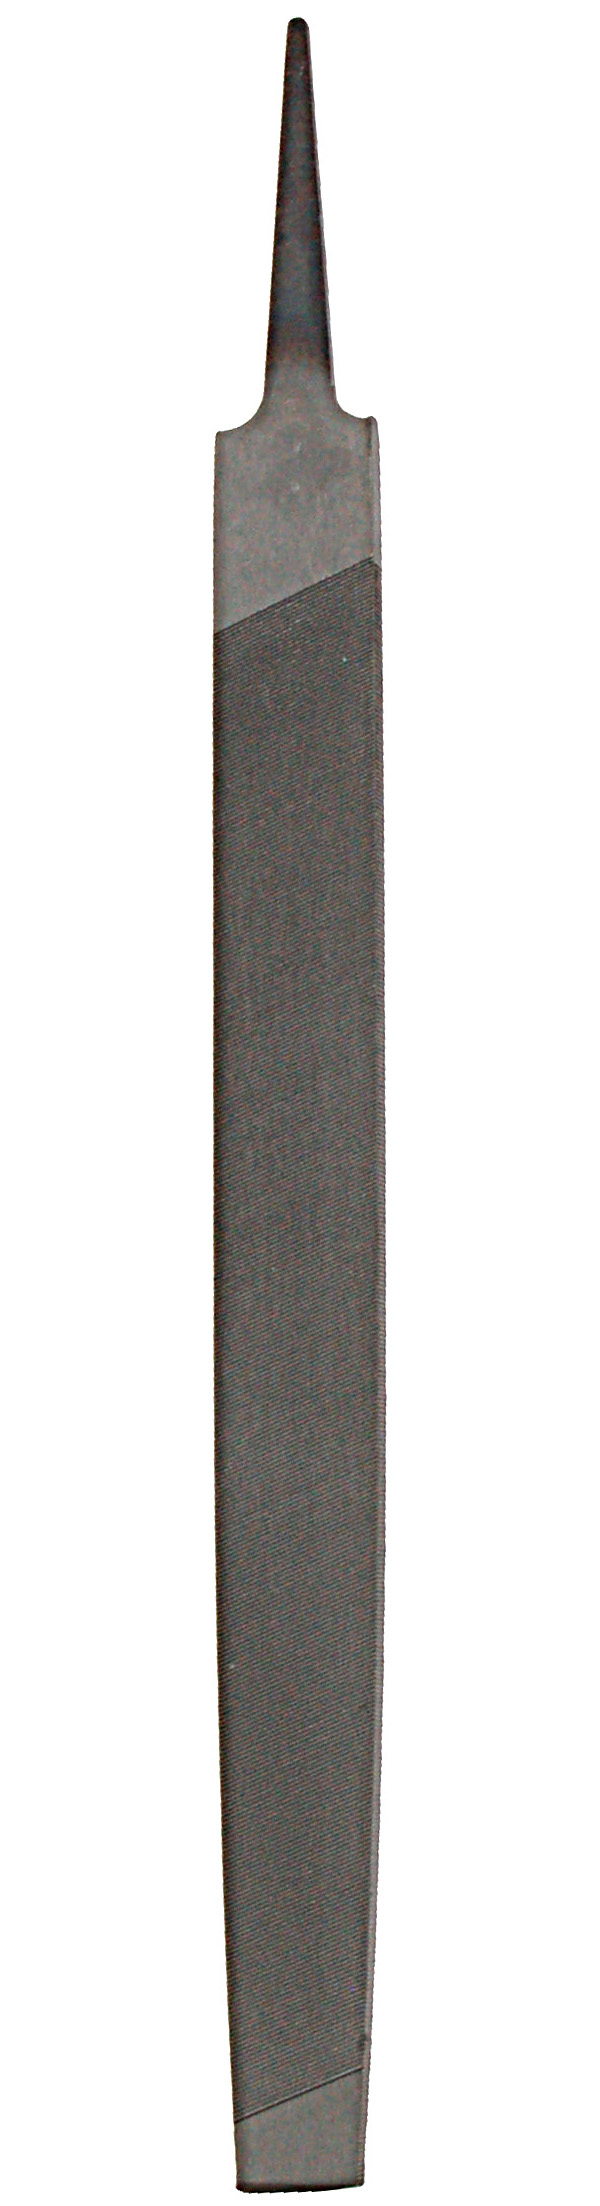 Zenport AGF250 Mill Bastard File, 10-Inch (250 mm), for sharpening pruners and knives